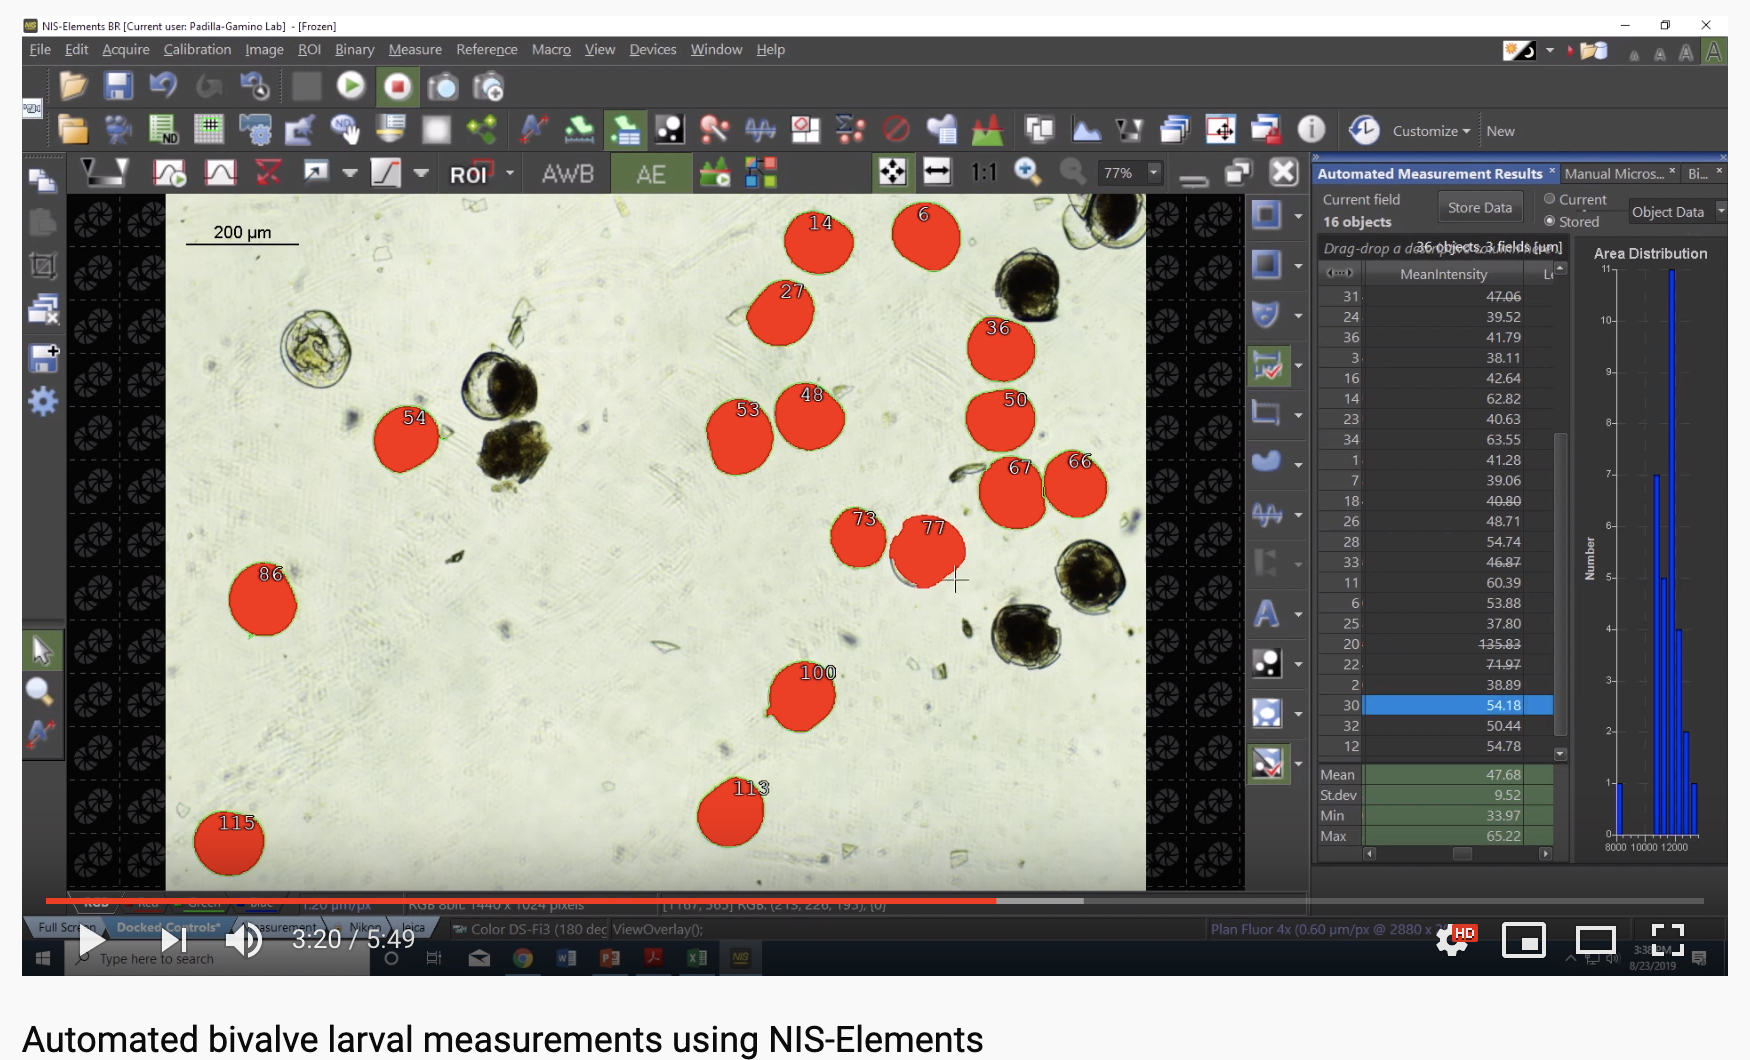 video: automated larval measuring on NIS-Elements